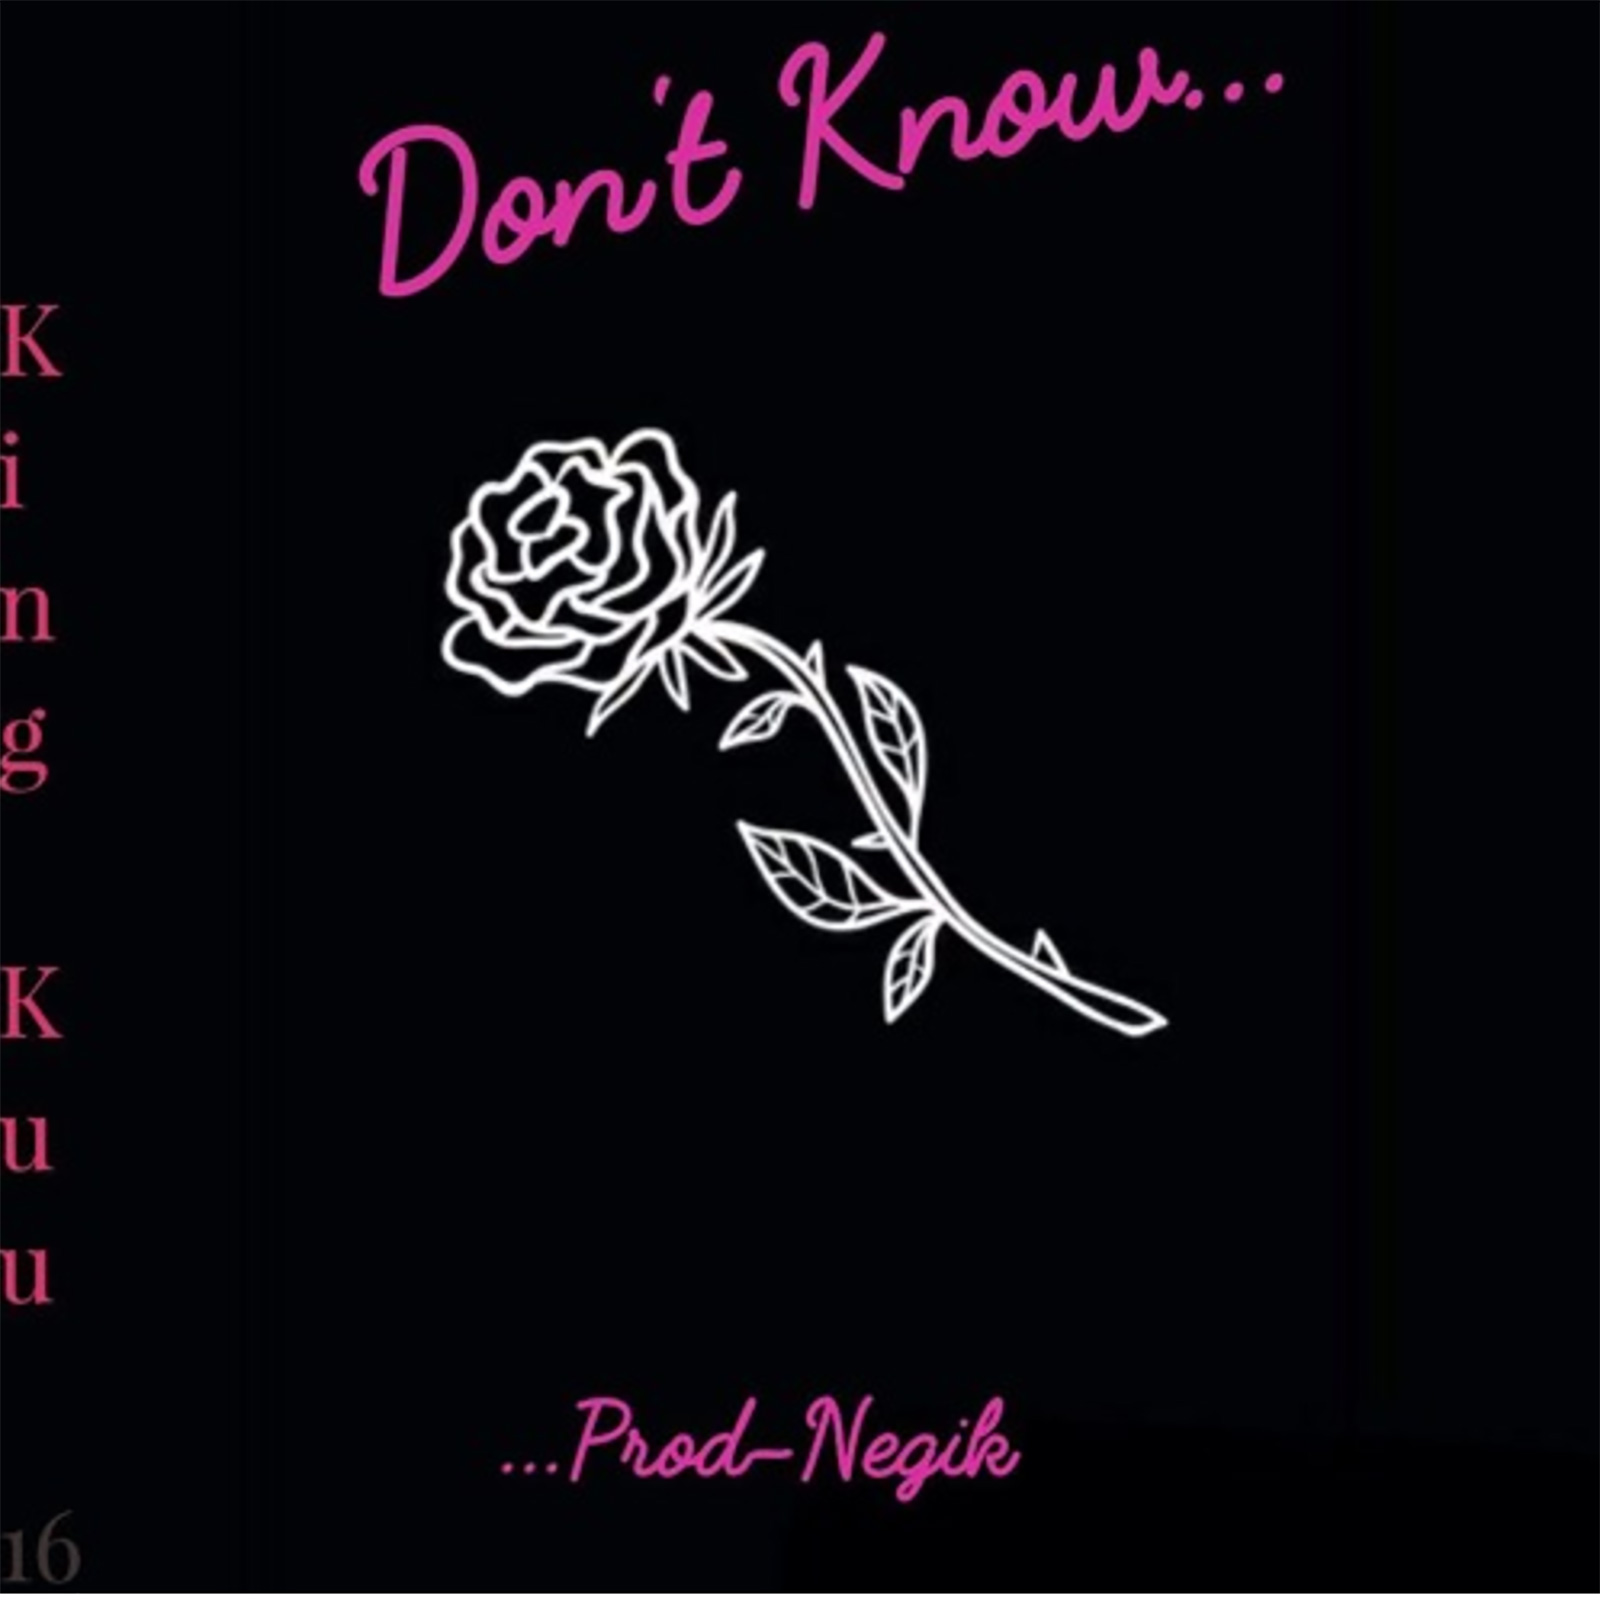 Don't Know by King Kuu